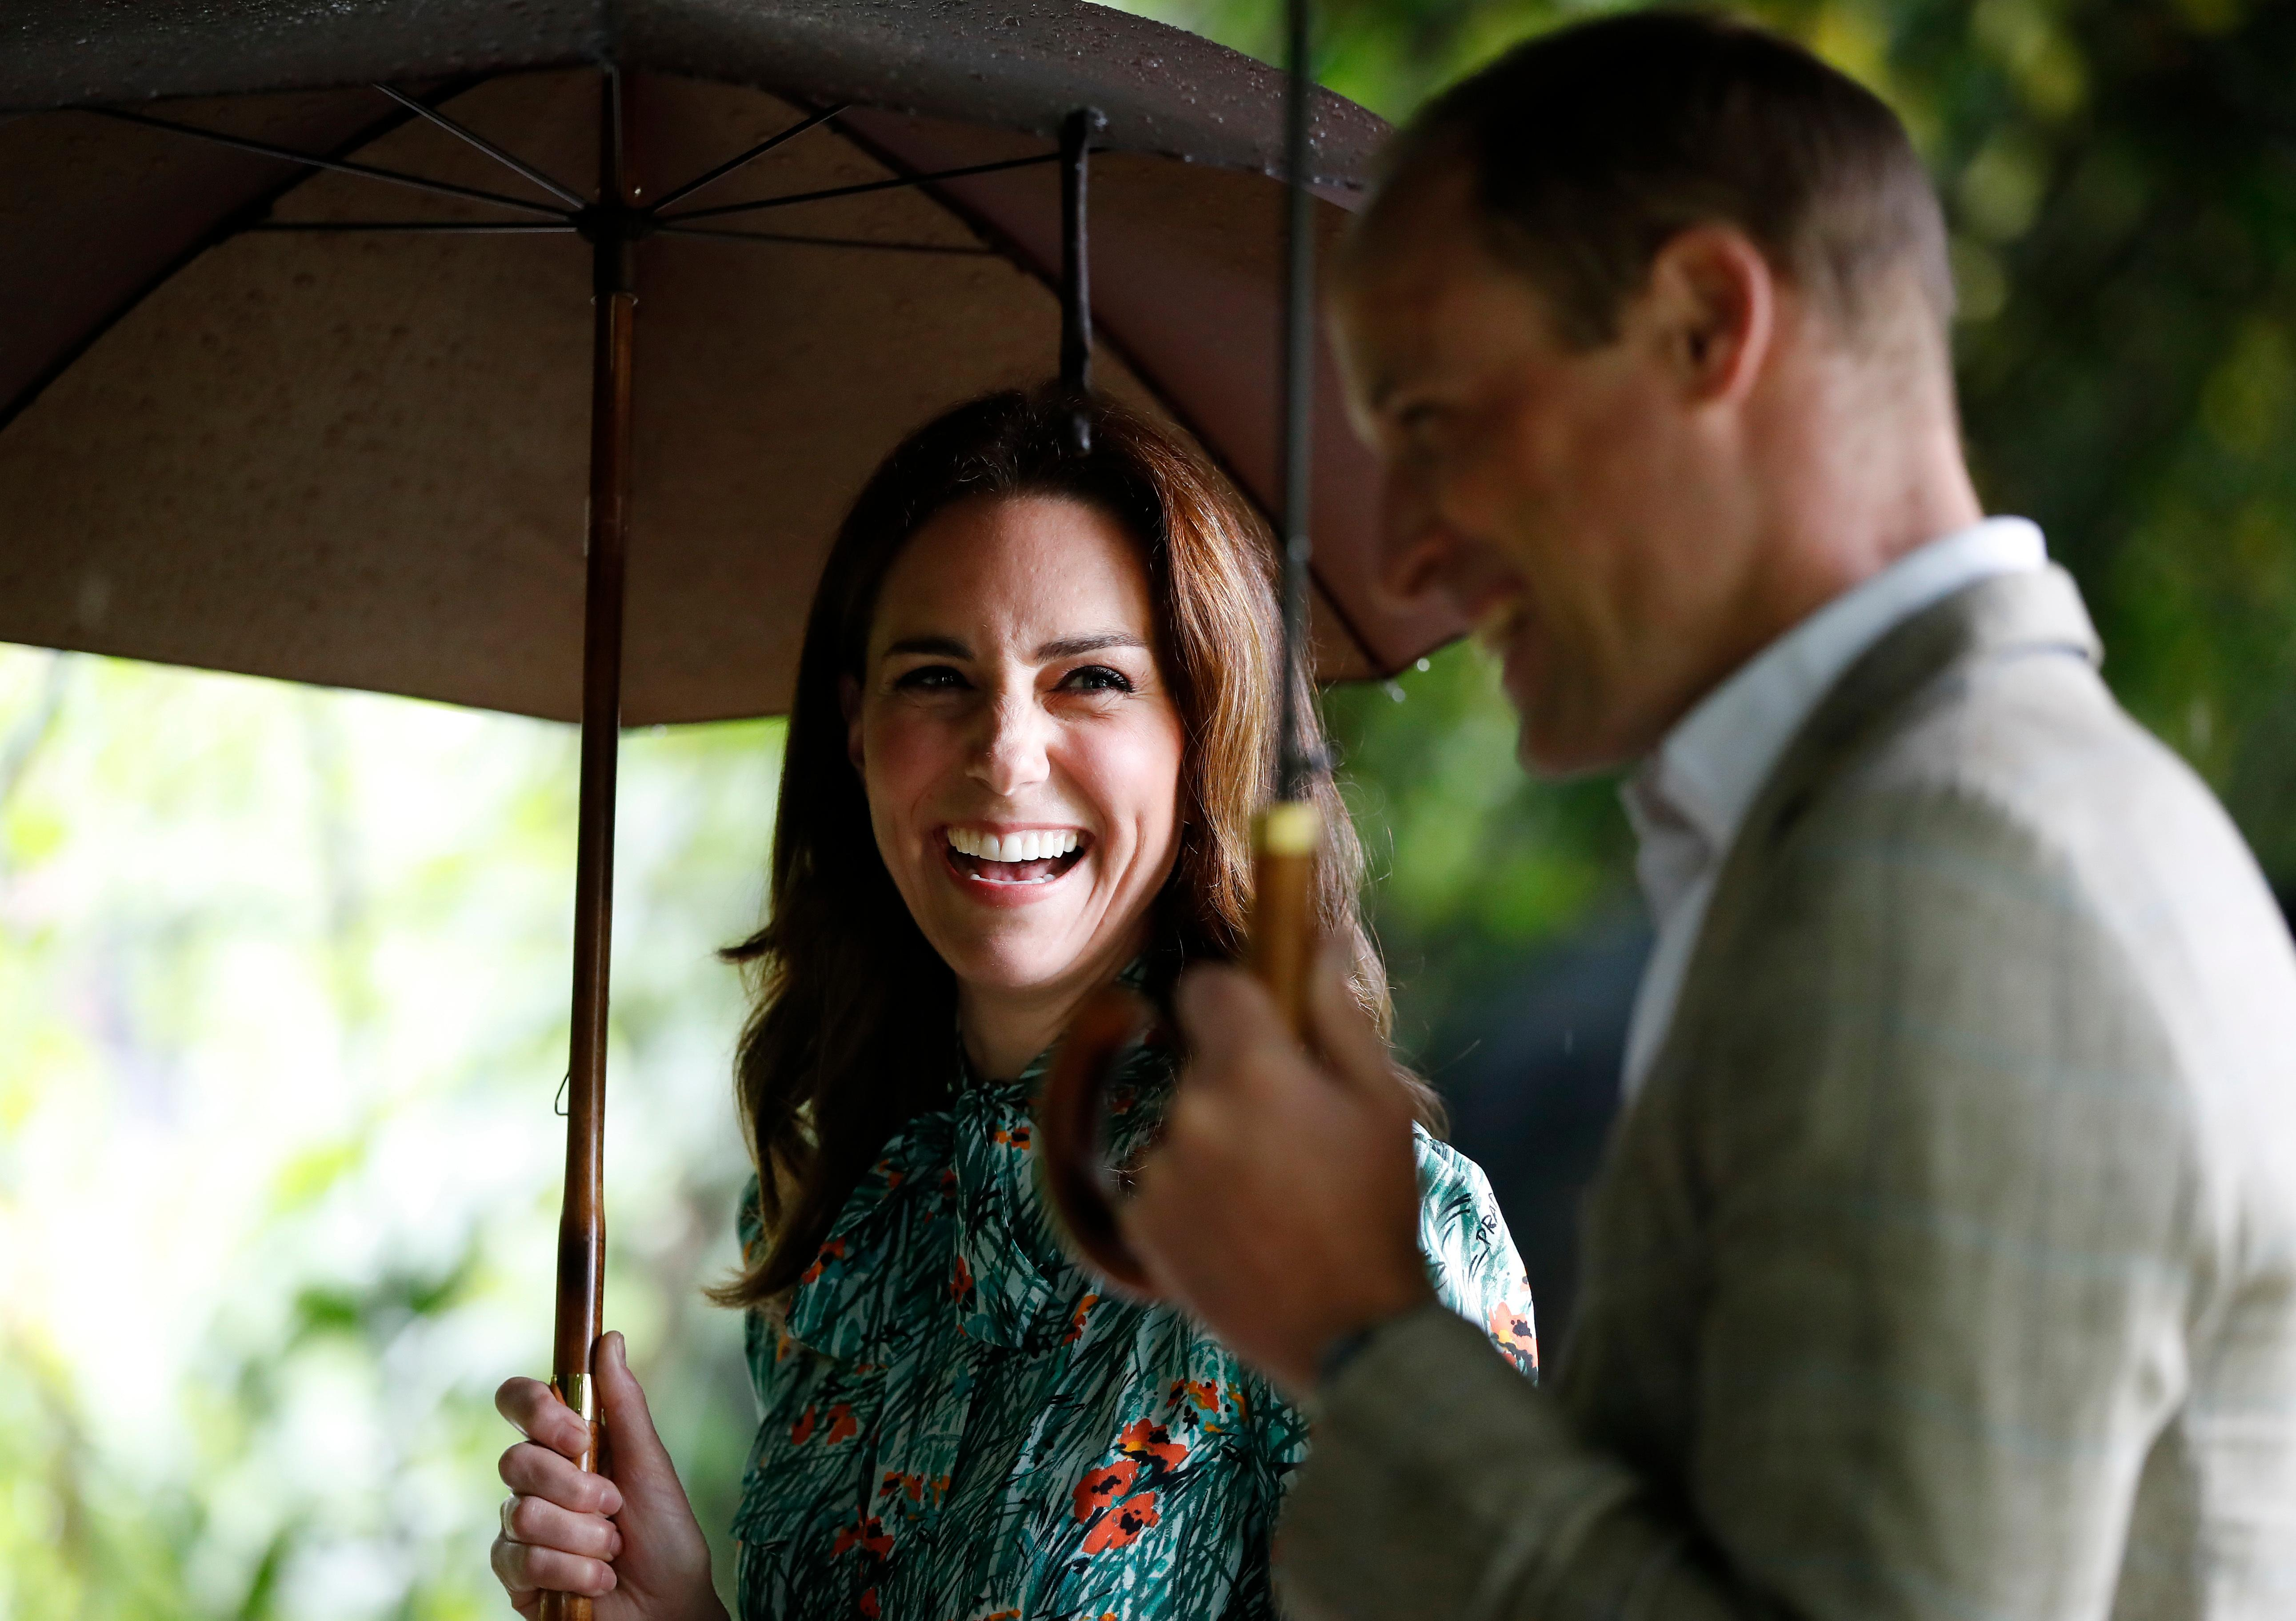 prince william says kate's pregnancy is 'a bit anxious to start with'